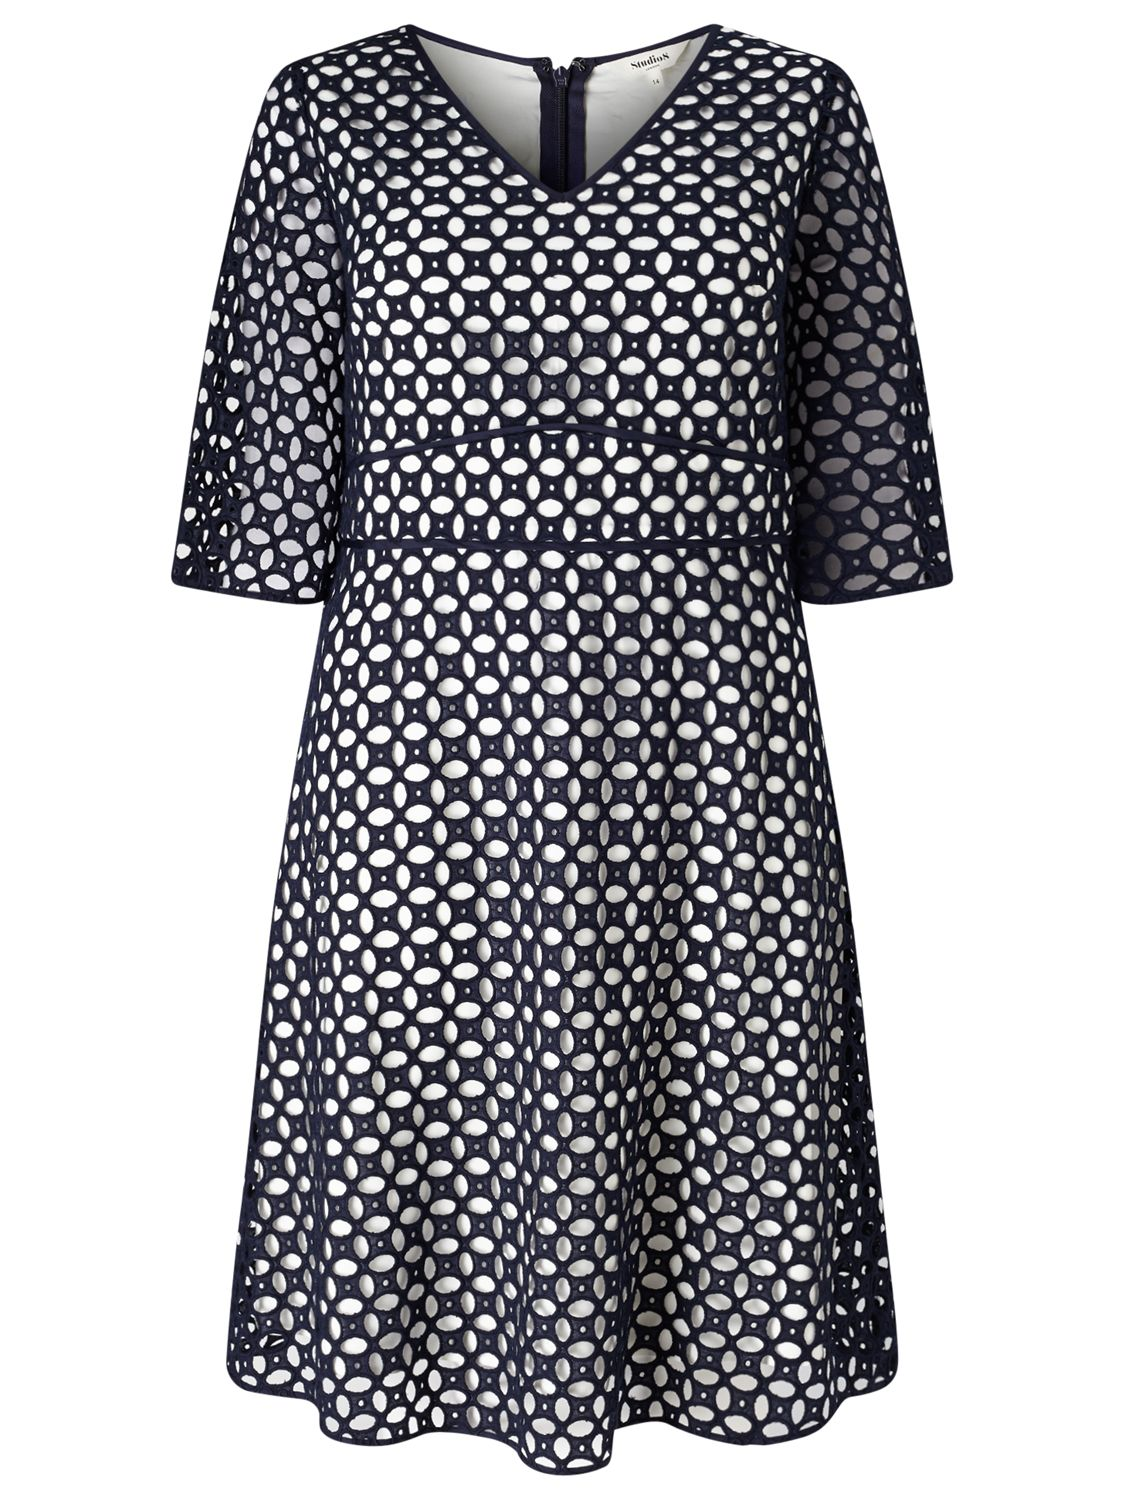 Studio 8 Studio 8 Liza Broderie Anglais Dress, Navy/Multi